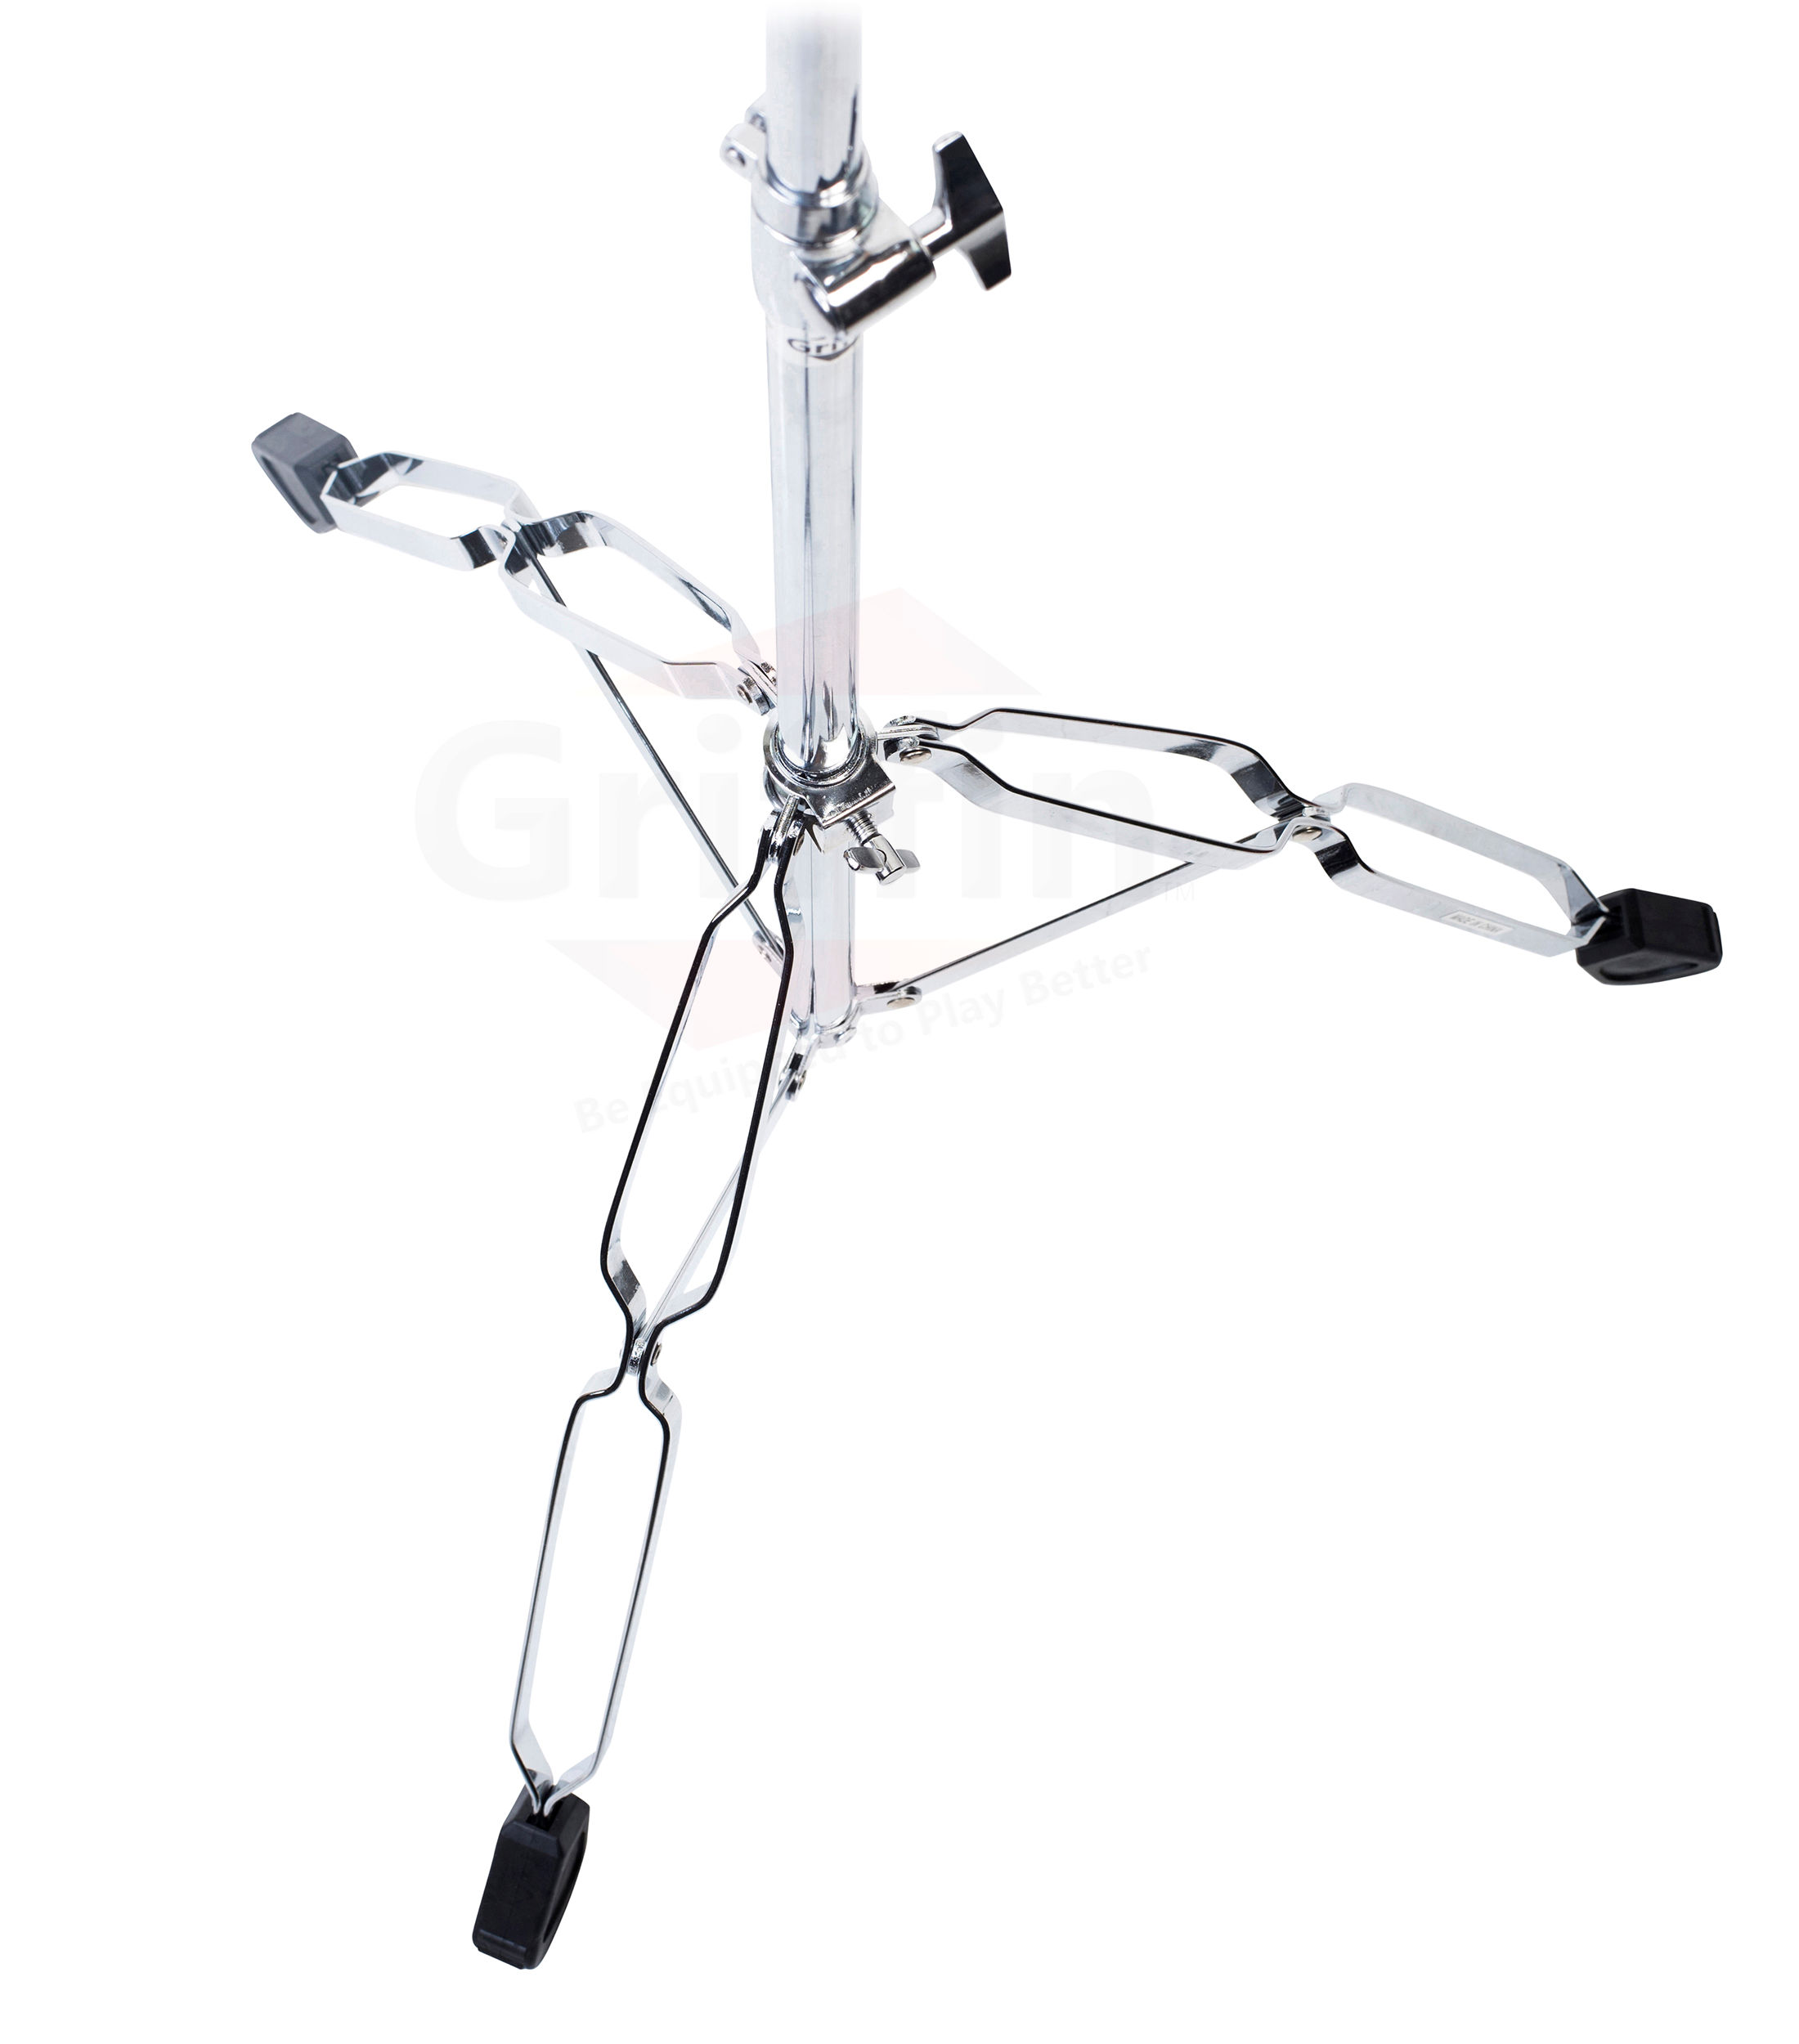 cymbal boom stand pack griffin straight drum hardware percussion holder mount ebay. Black Bedroom Furniture Sets. Home Design Ideas